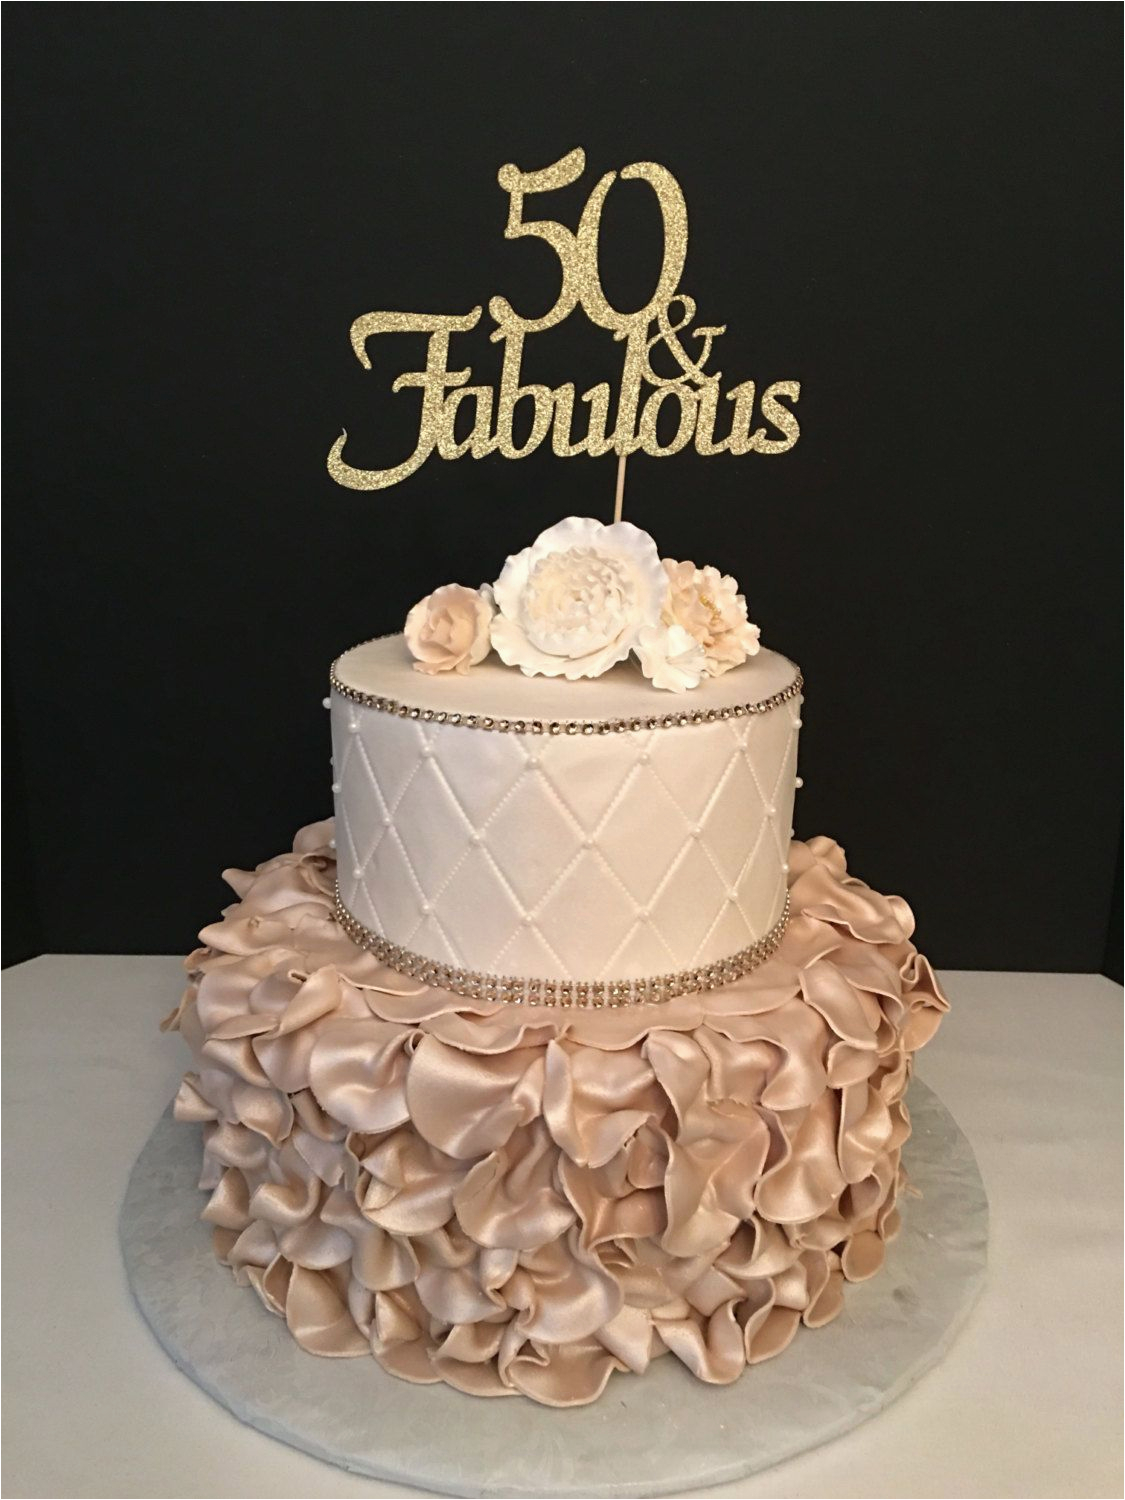 50th Birthday Cake Toppers Decorations Picture 71213237840786664